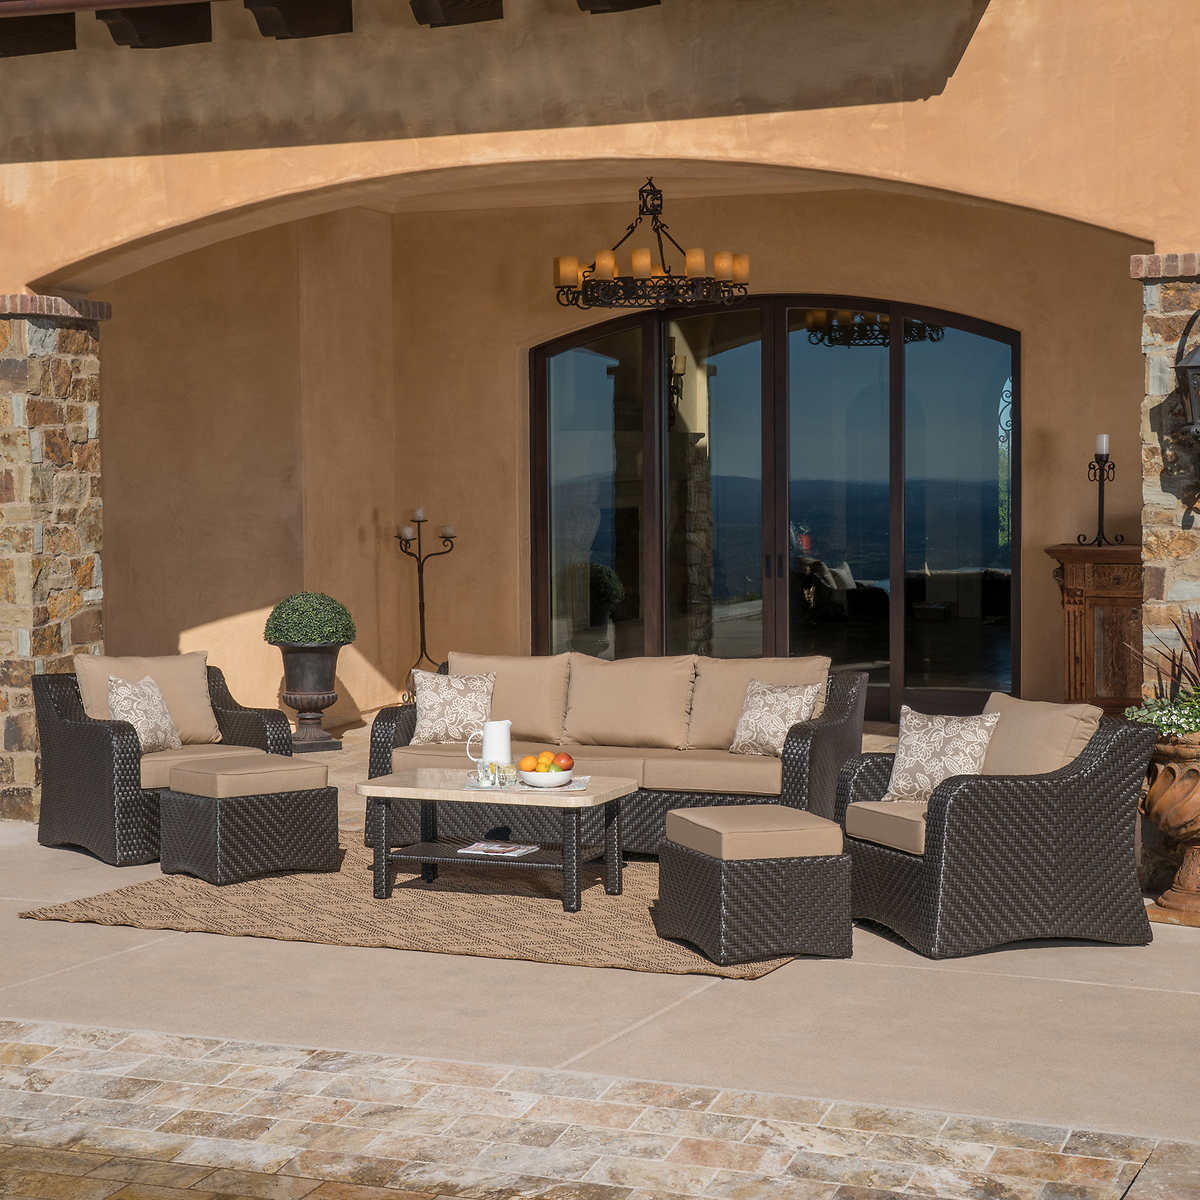 Valencia 6-piece Seating Set by Mission Hills - Valencia Costco